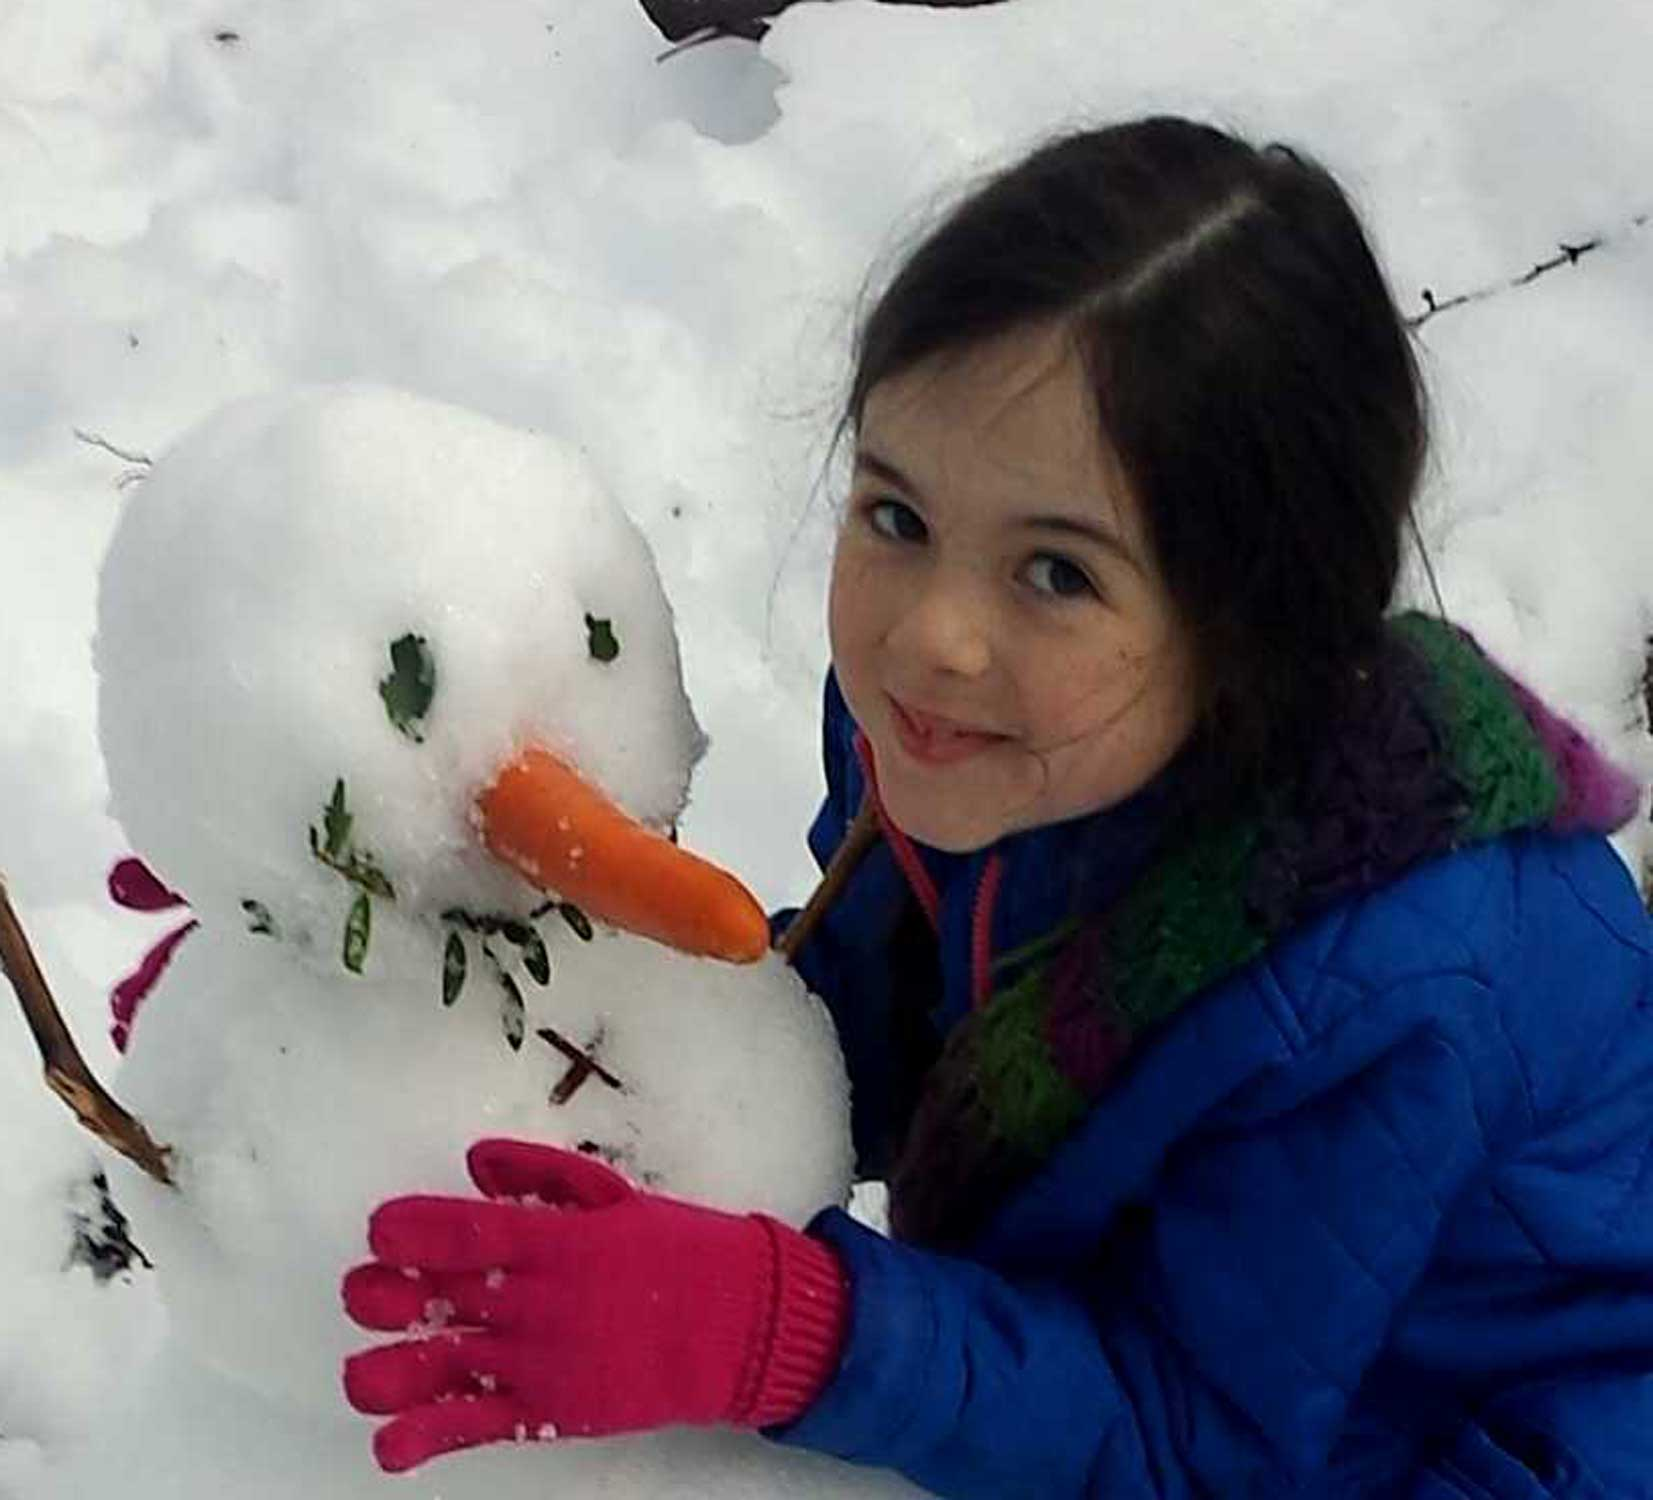 Tookii things to do with kids with her snowman one of the outdoor activities for kids